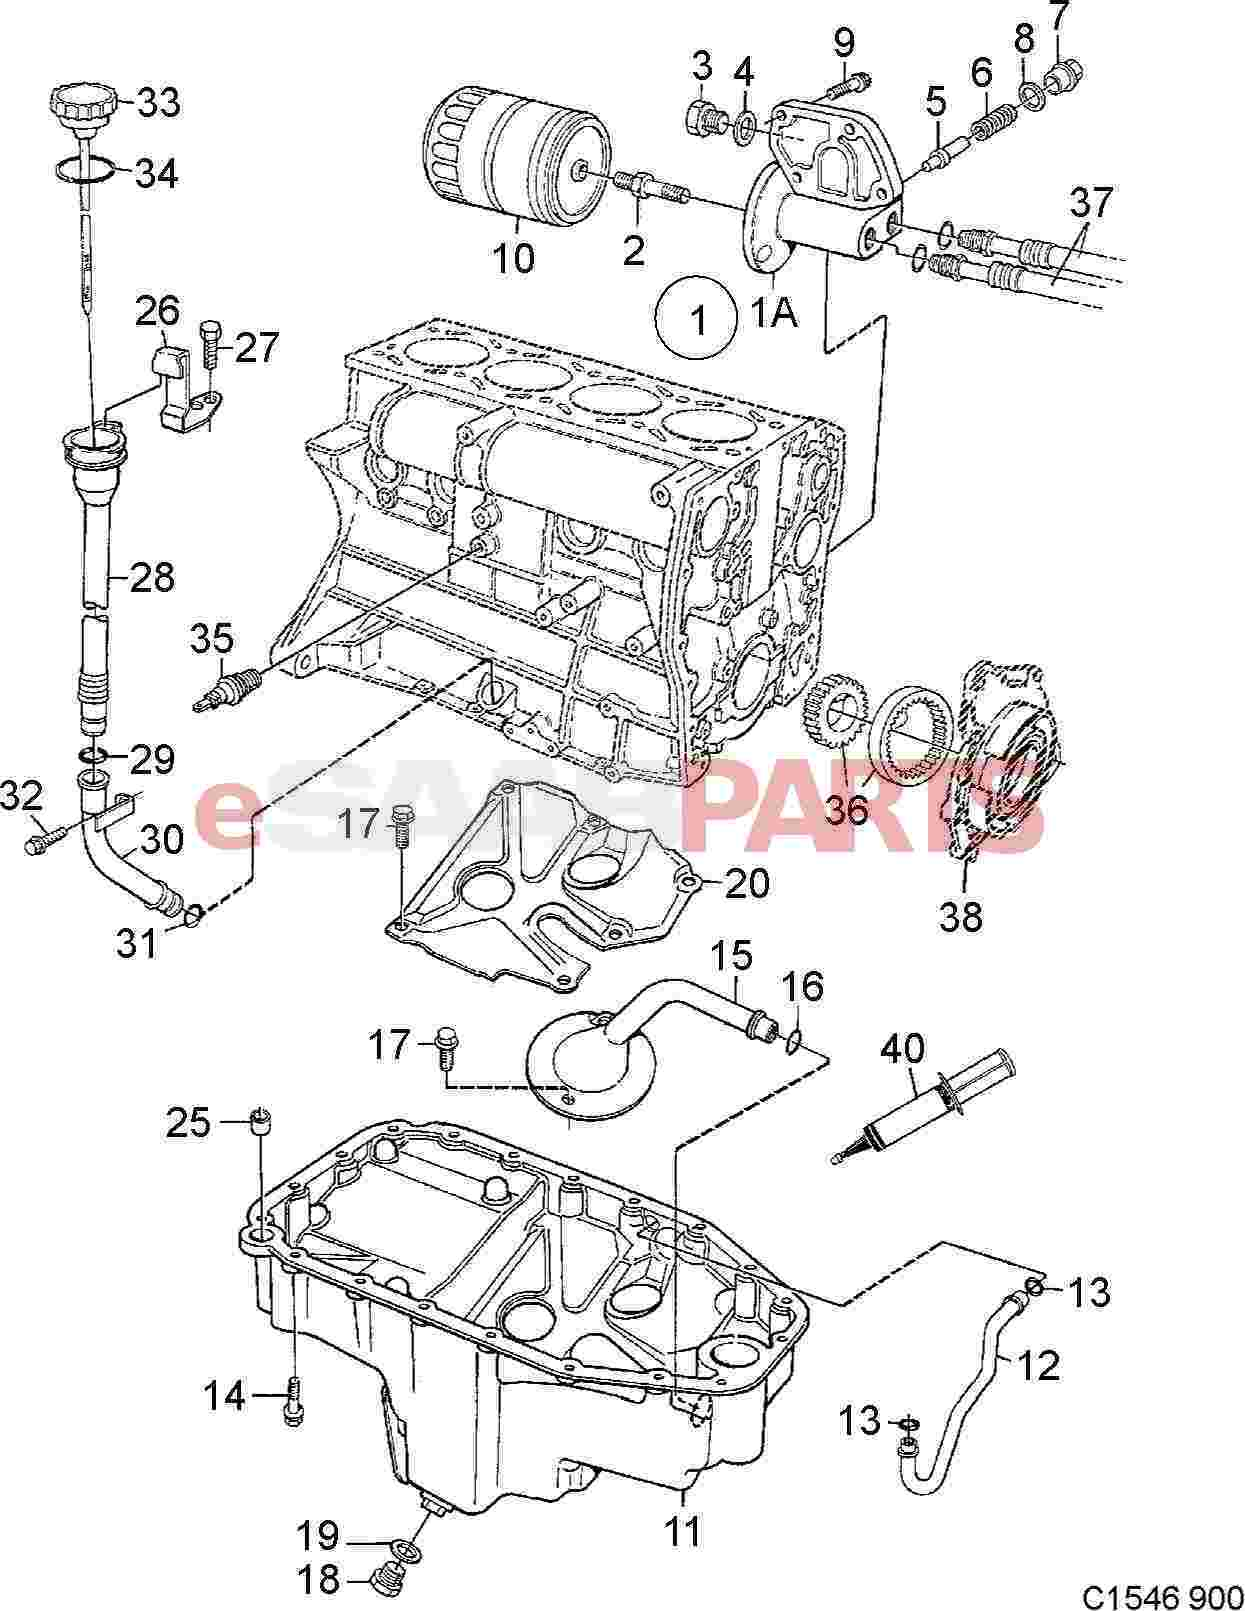 hight resolution of belt routing diagram for 1999 toyota tacoma html